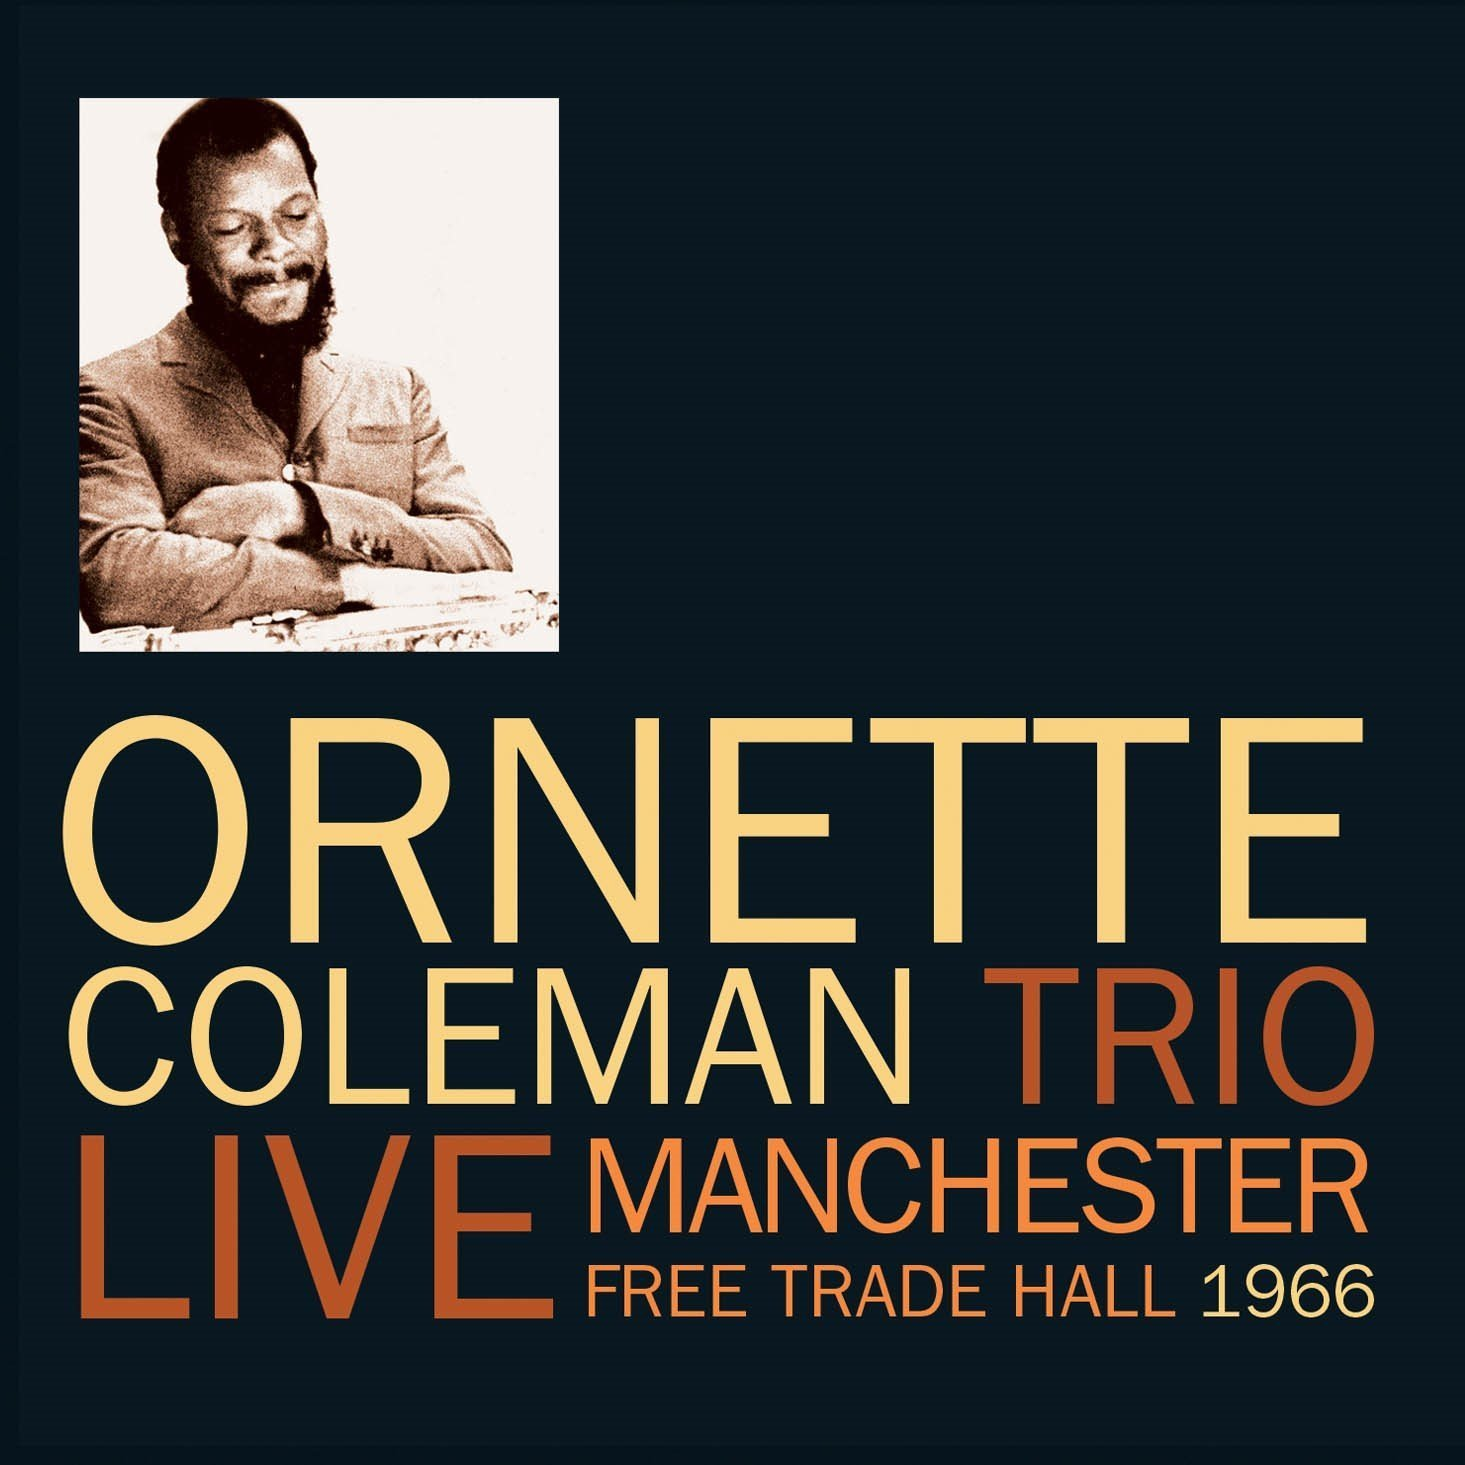 ORNETTE COLEMAN TRIO - LIVE MANCHESTER FREE TRADE HALL 1966 (2 CD) (CD)